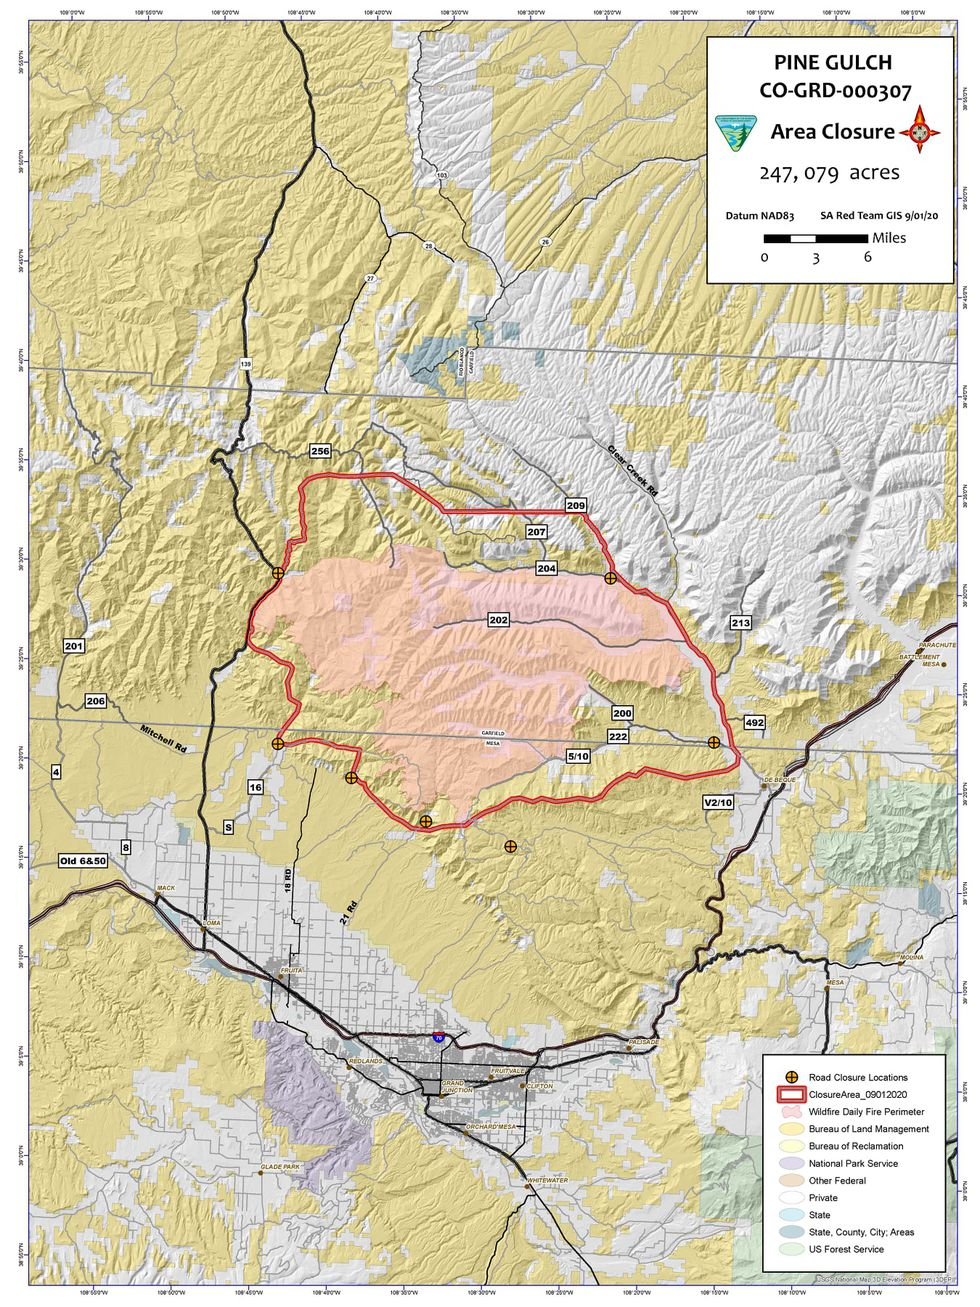 The BLM says that the closure is to ensure public and firefighter safety during suppression and...